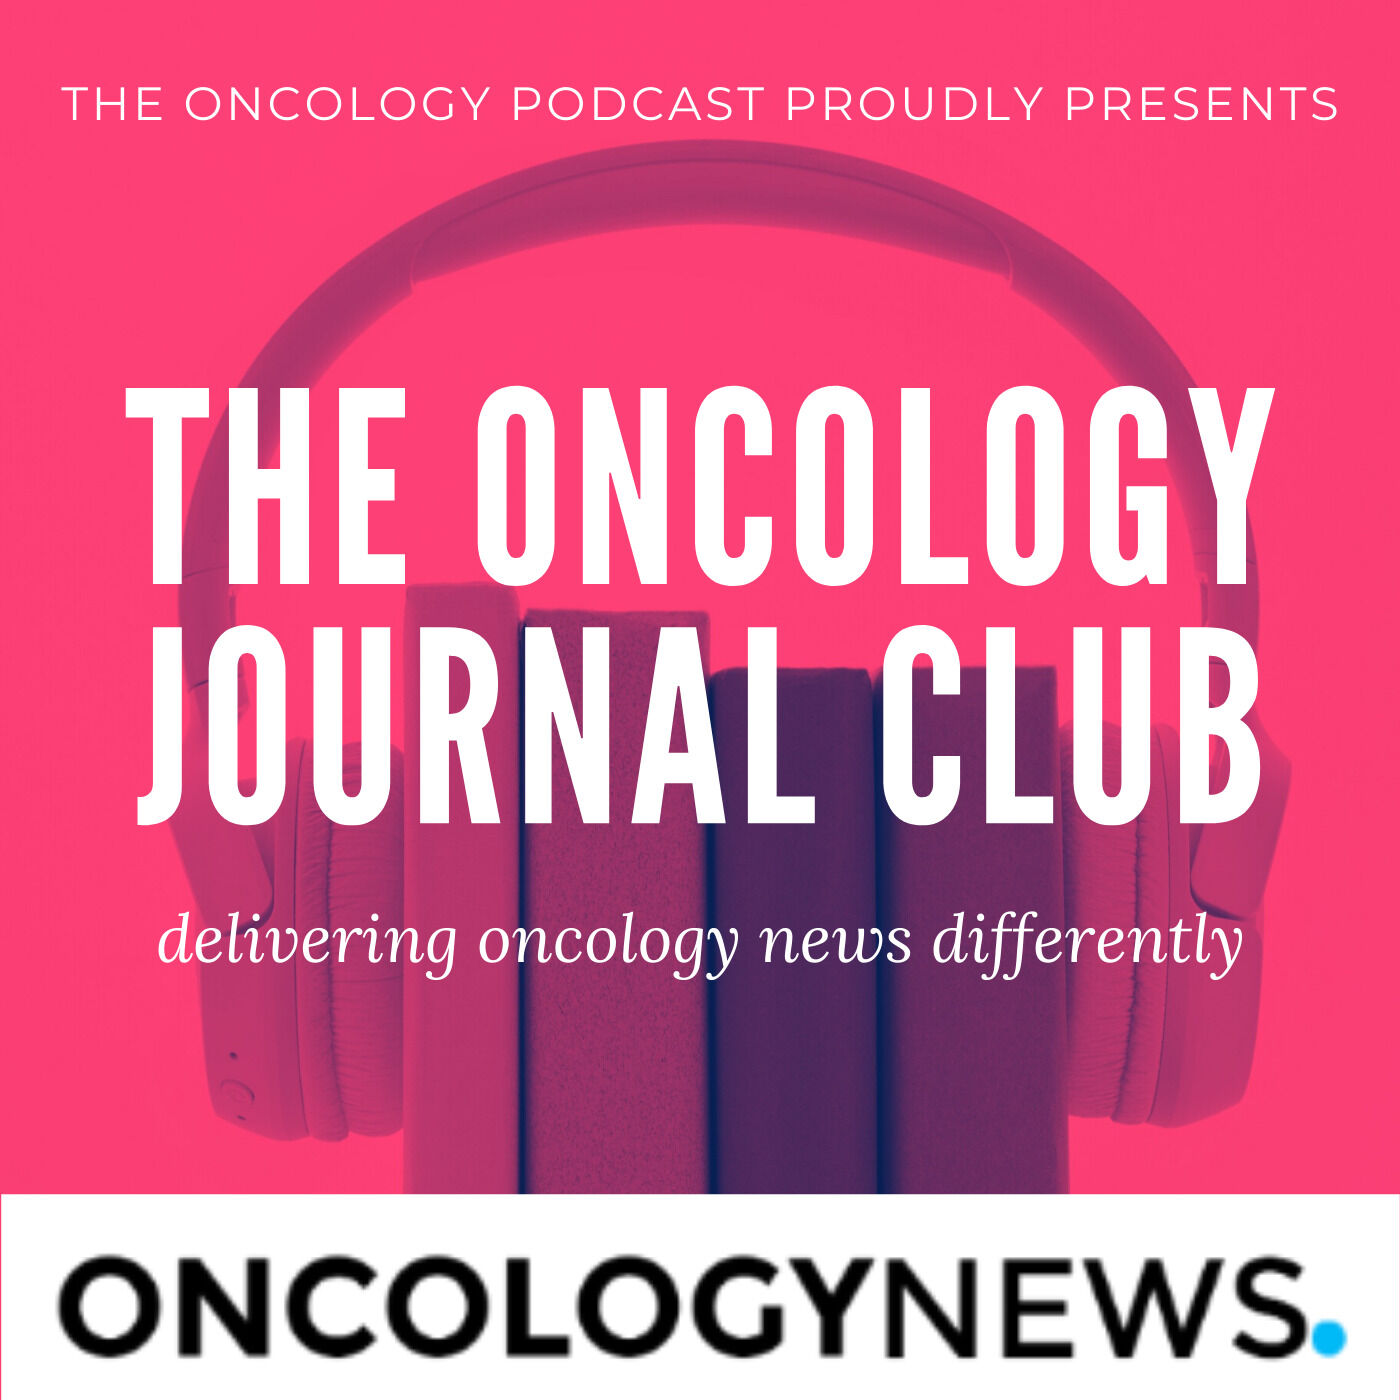 The Oncology Journal Club Episode 5: Cachexia, Gender Equity and 'Manels', Quick Bites, Special Guest Dr Christoper Steer and much more...